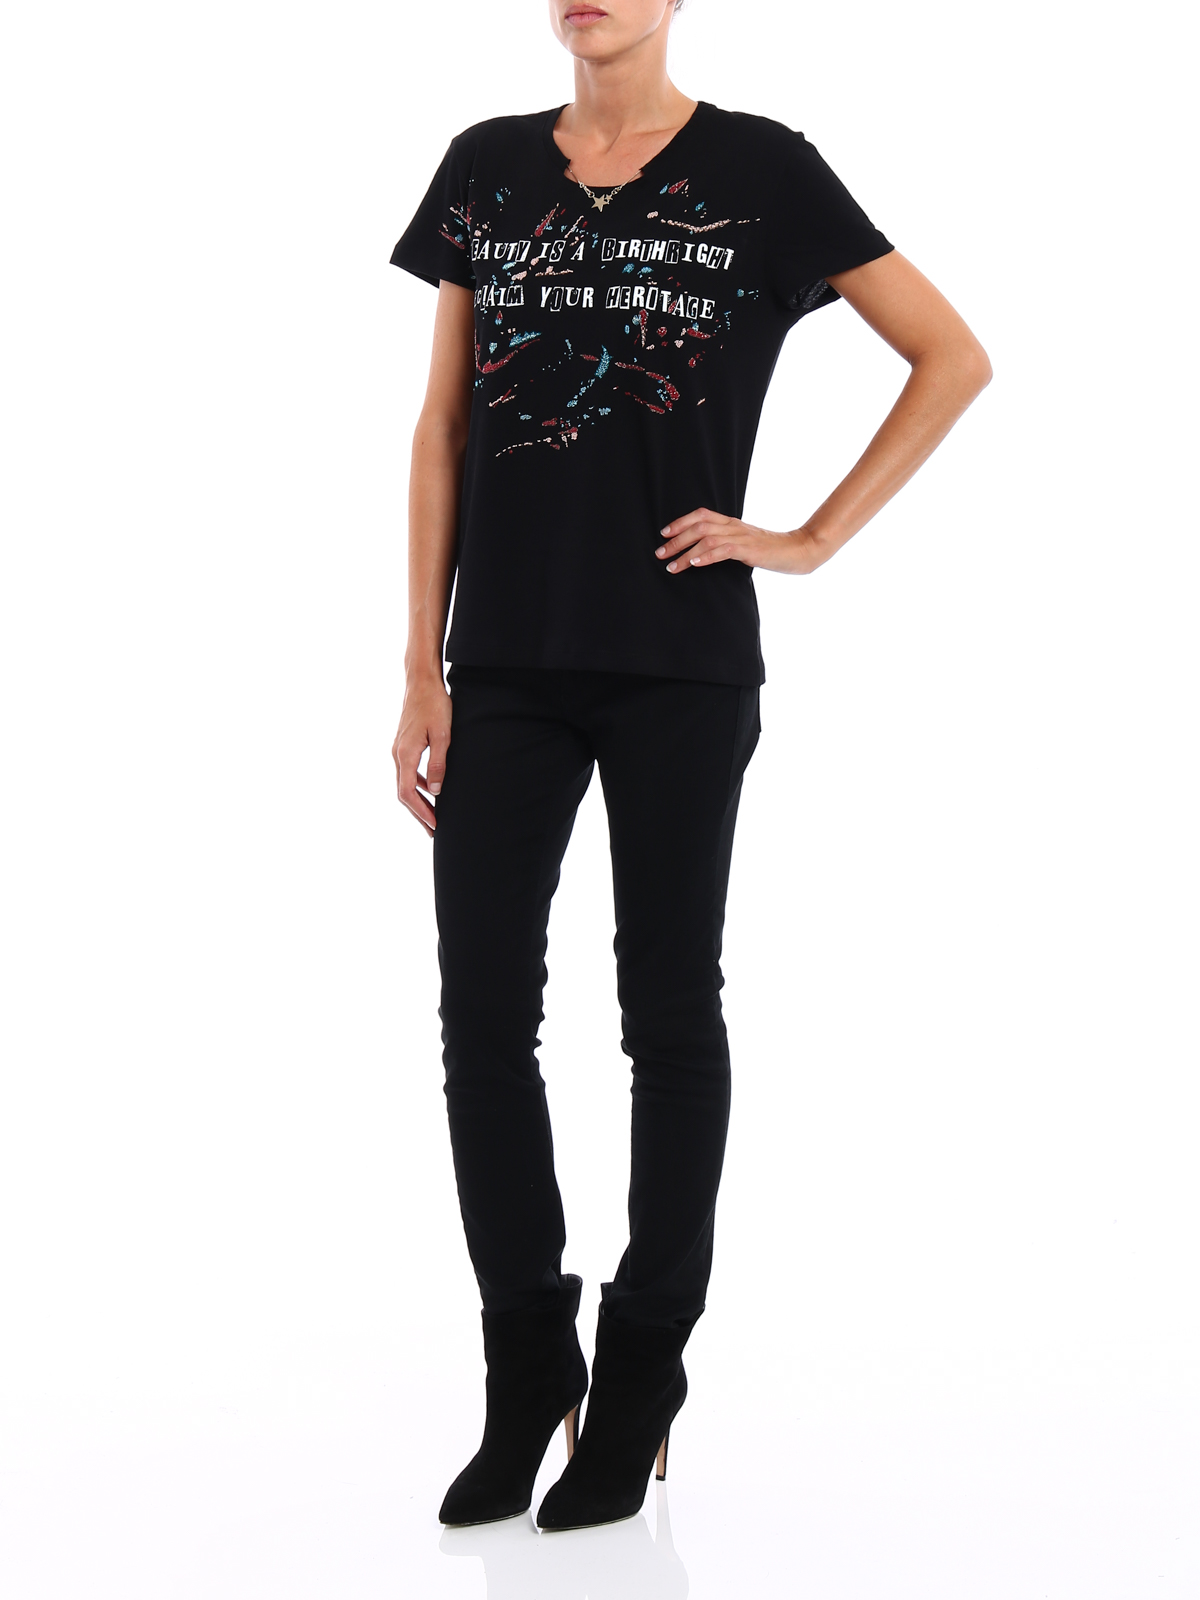 Jamie reid embroidered t shirt by valentino shirts ikrix